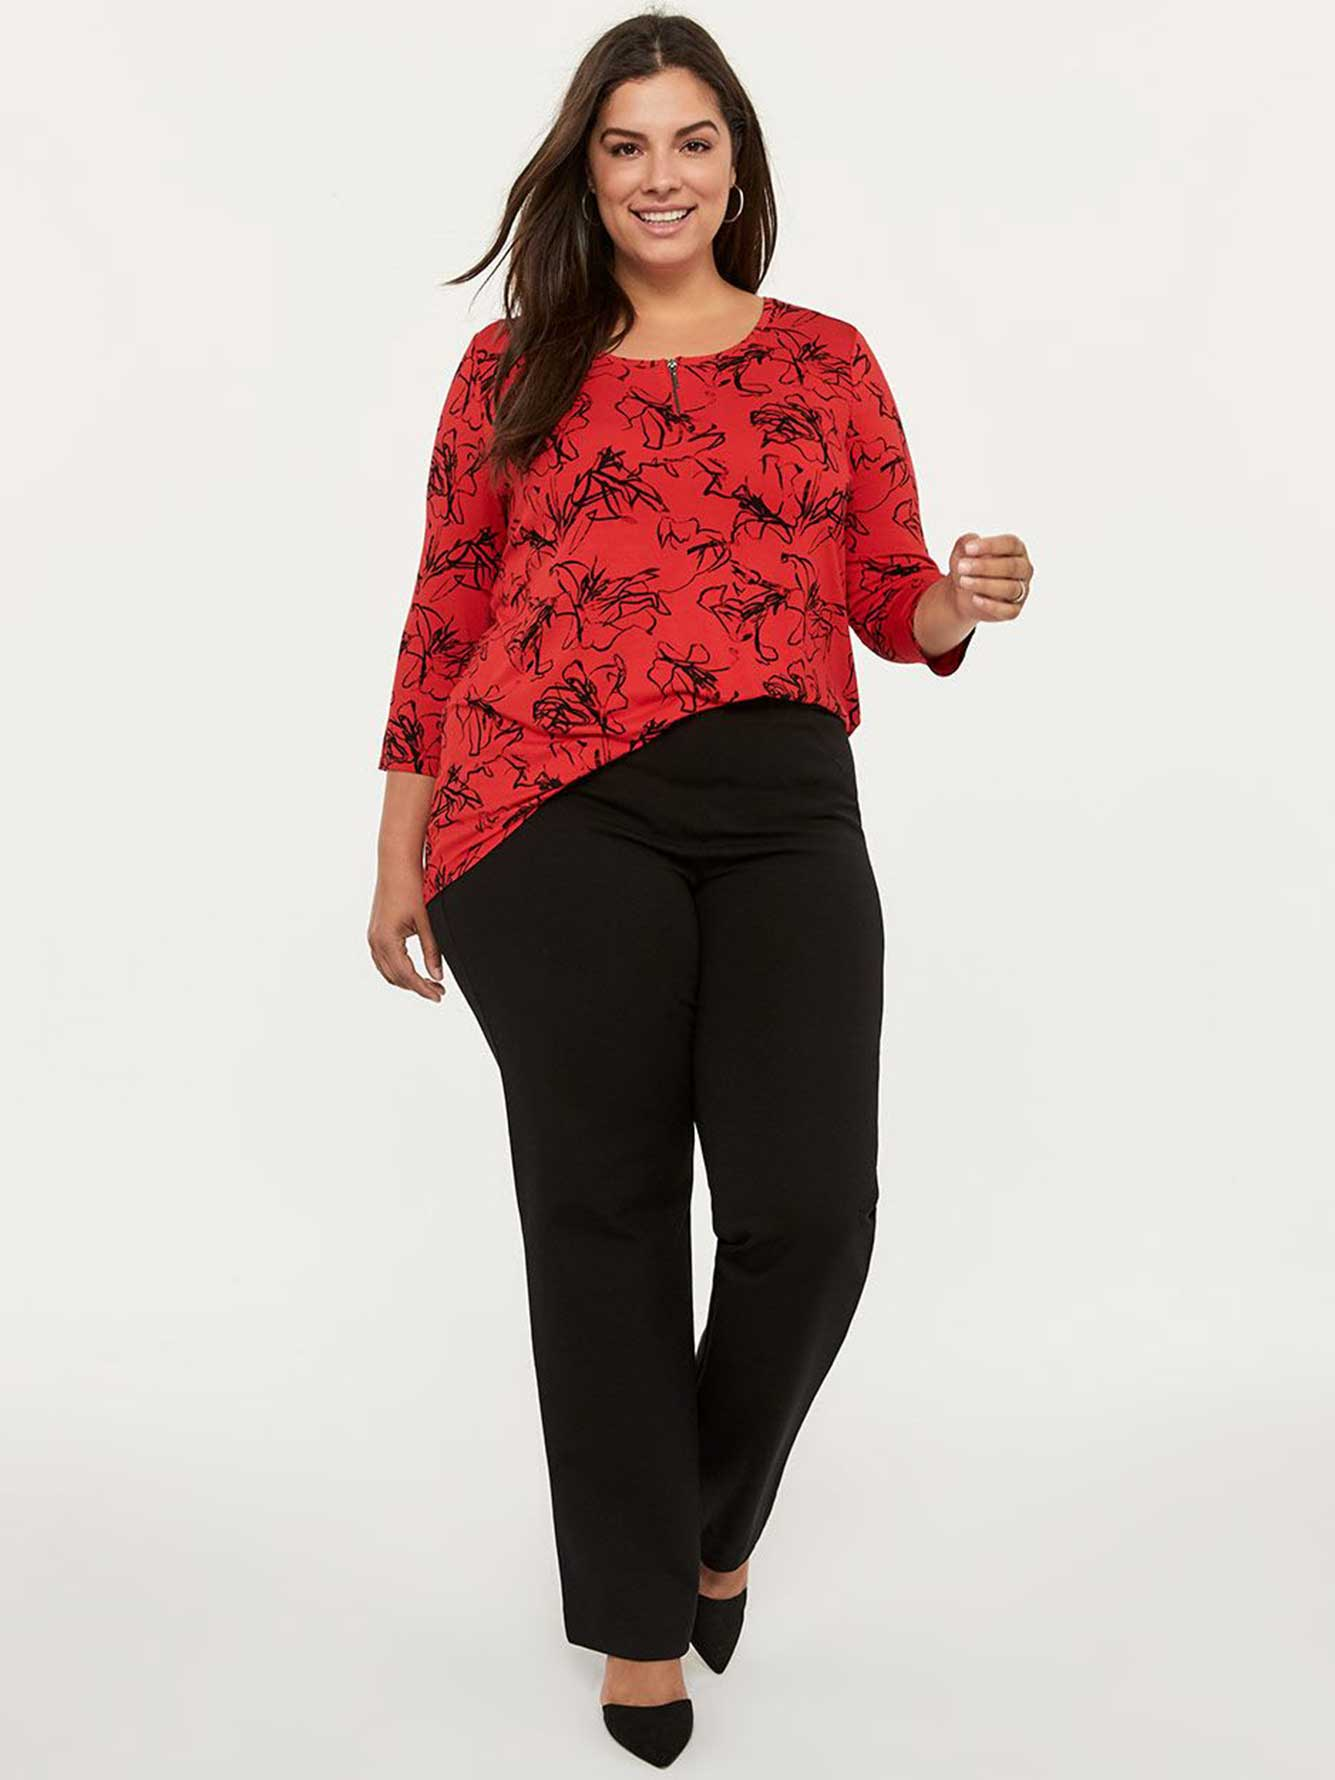 """penningtons,Move in style with this flattering plus-size sculpting pant from In Every Story! It features built-in mesh panels with special support directed at your hips and backside. Made to sculpt your figure, it also provides a higher rise, and has wide pull-on waistband for better support. It offers a slimming effect with straight leg that flatters your silhouette. Whats more? Its made with soft and stretchy jersey fabric. -Built-in sculpting mesh fabric -Offers slimming effect -Pull-on with wide waistband -Ponte de Roma fabric -Available in petite and tall sizes -32"""" inseam"""